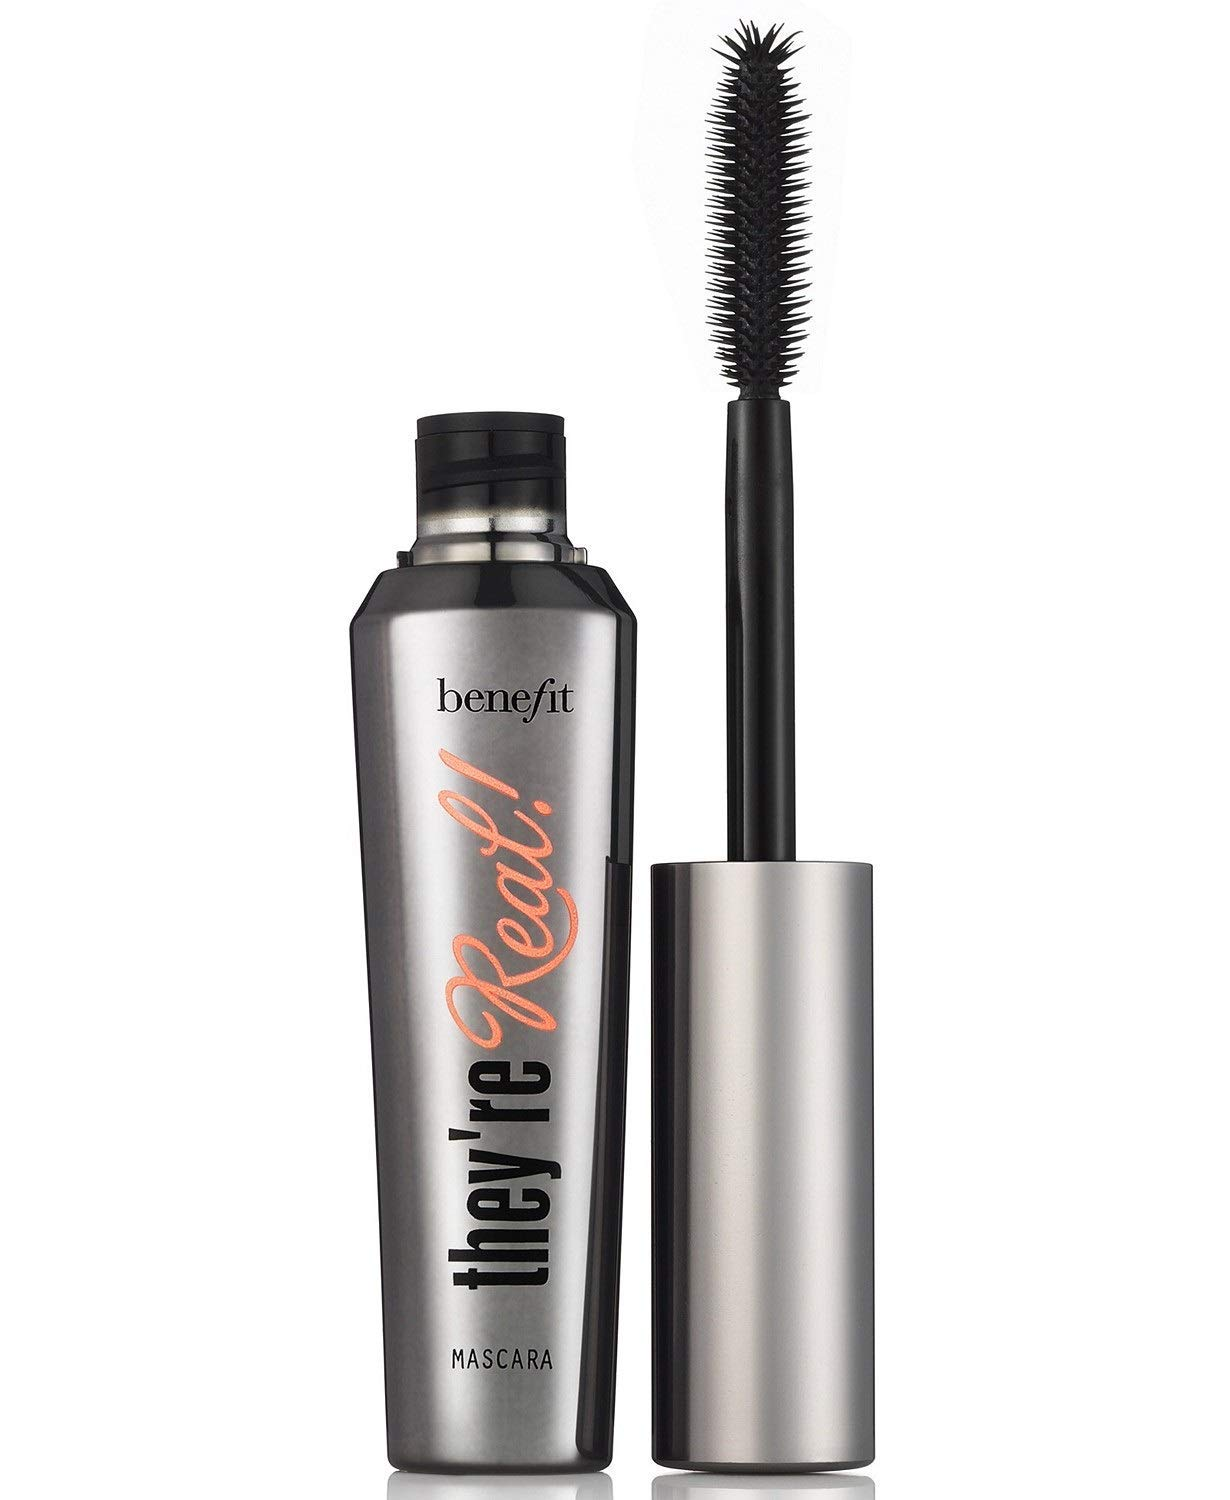 Best Mascara for women over 50